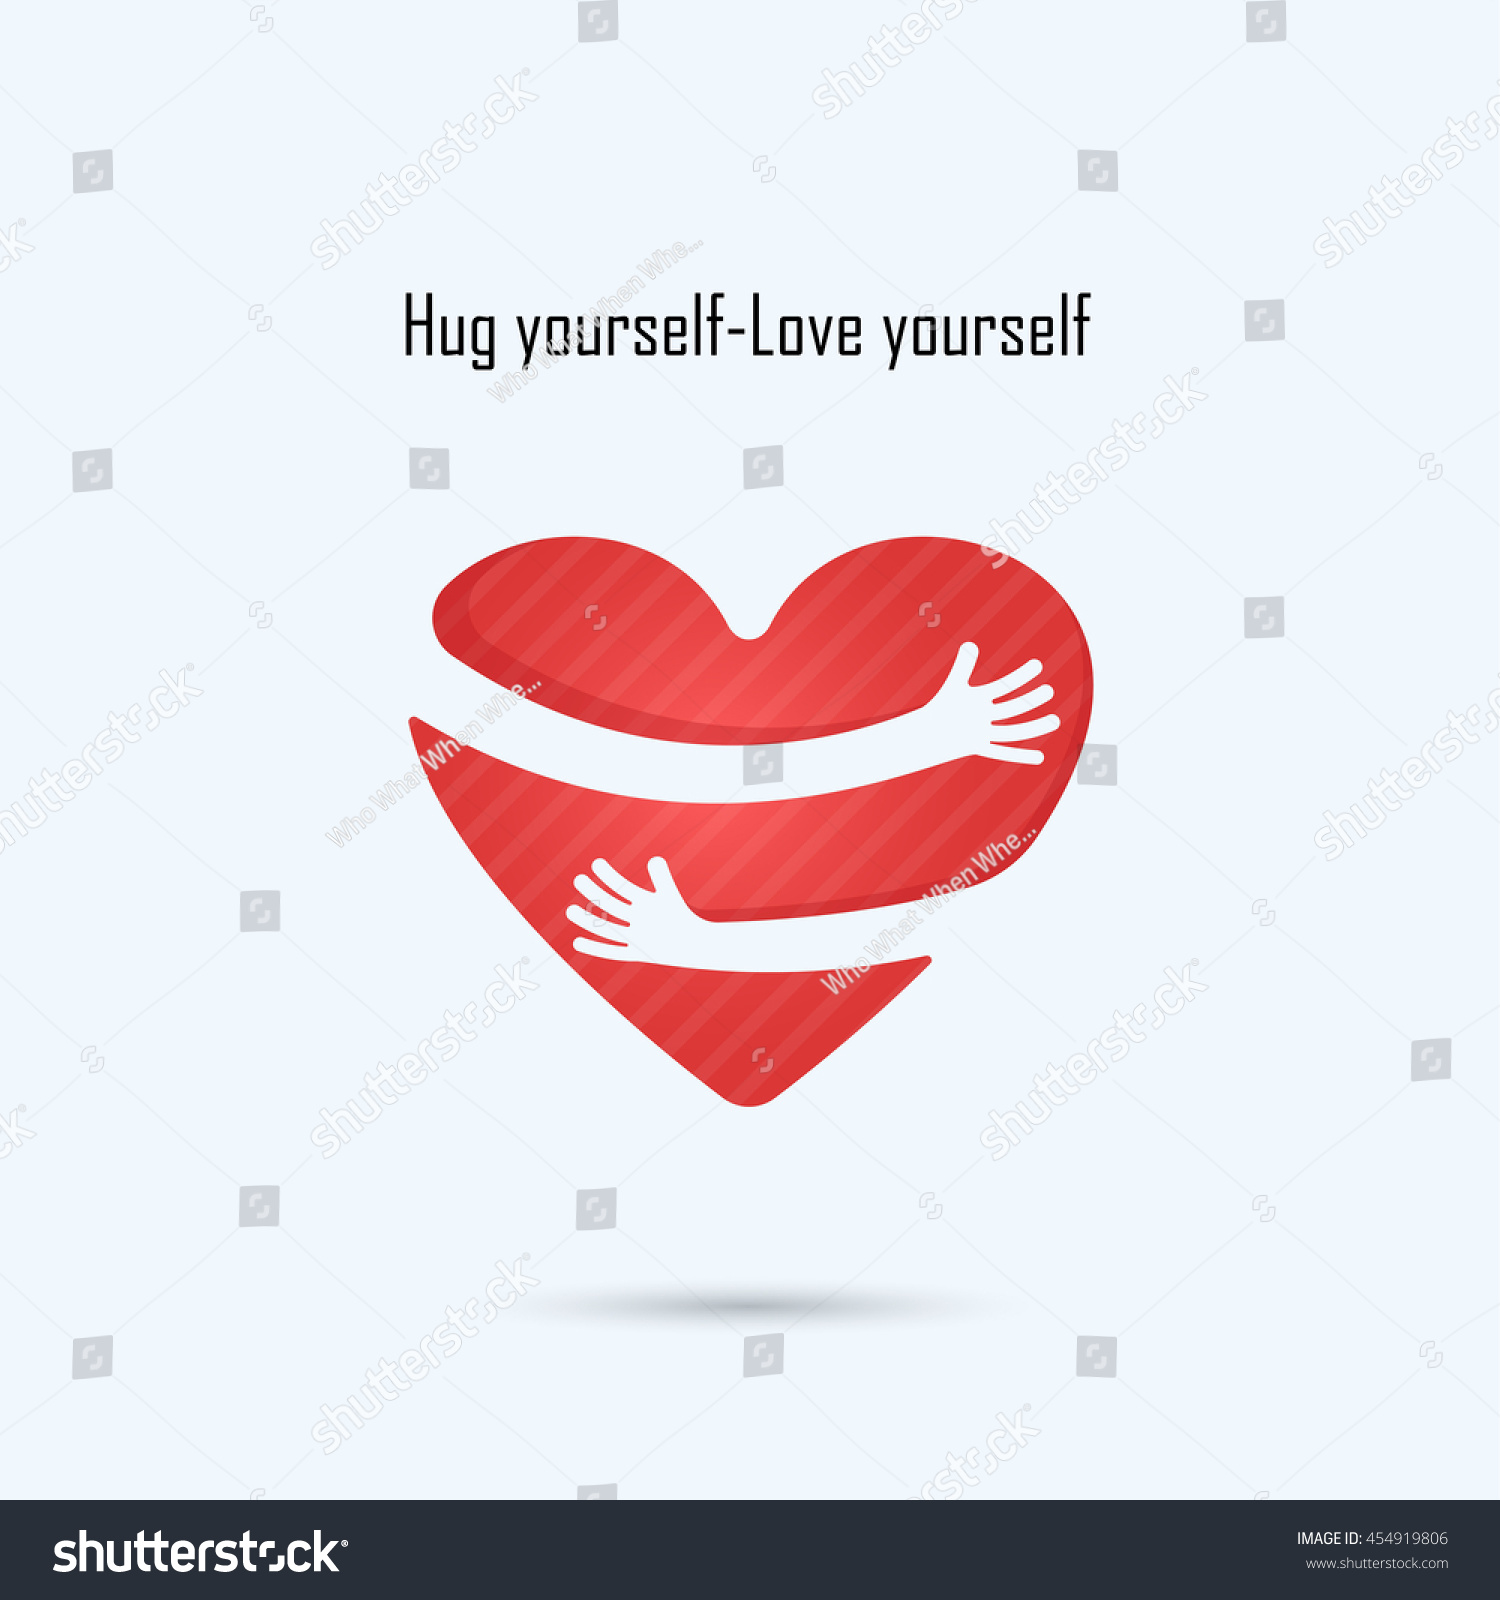 Hug Yourself Logolove Yourself Logolove Heart Stock Vector 454919806 ...